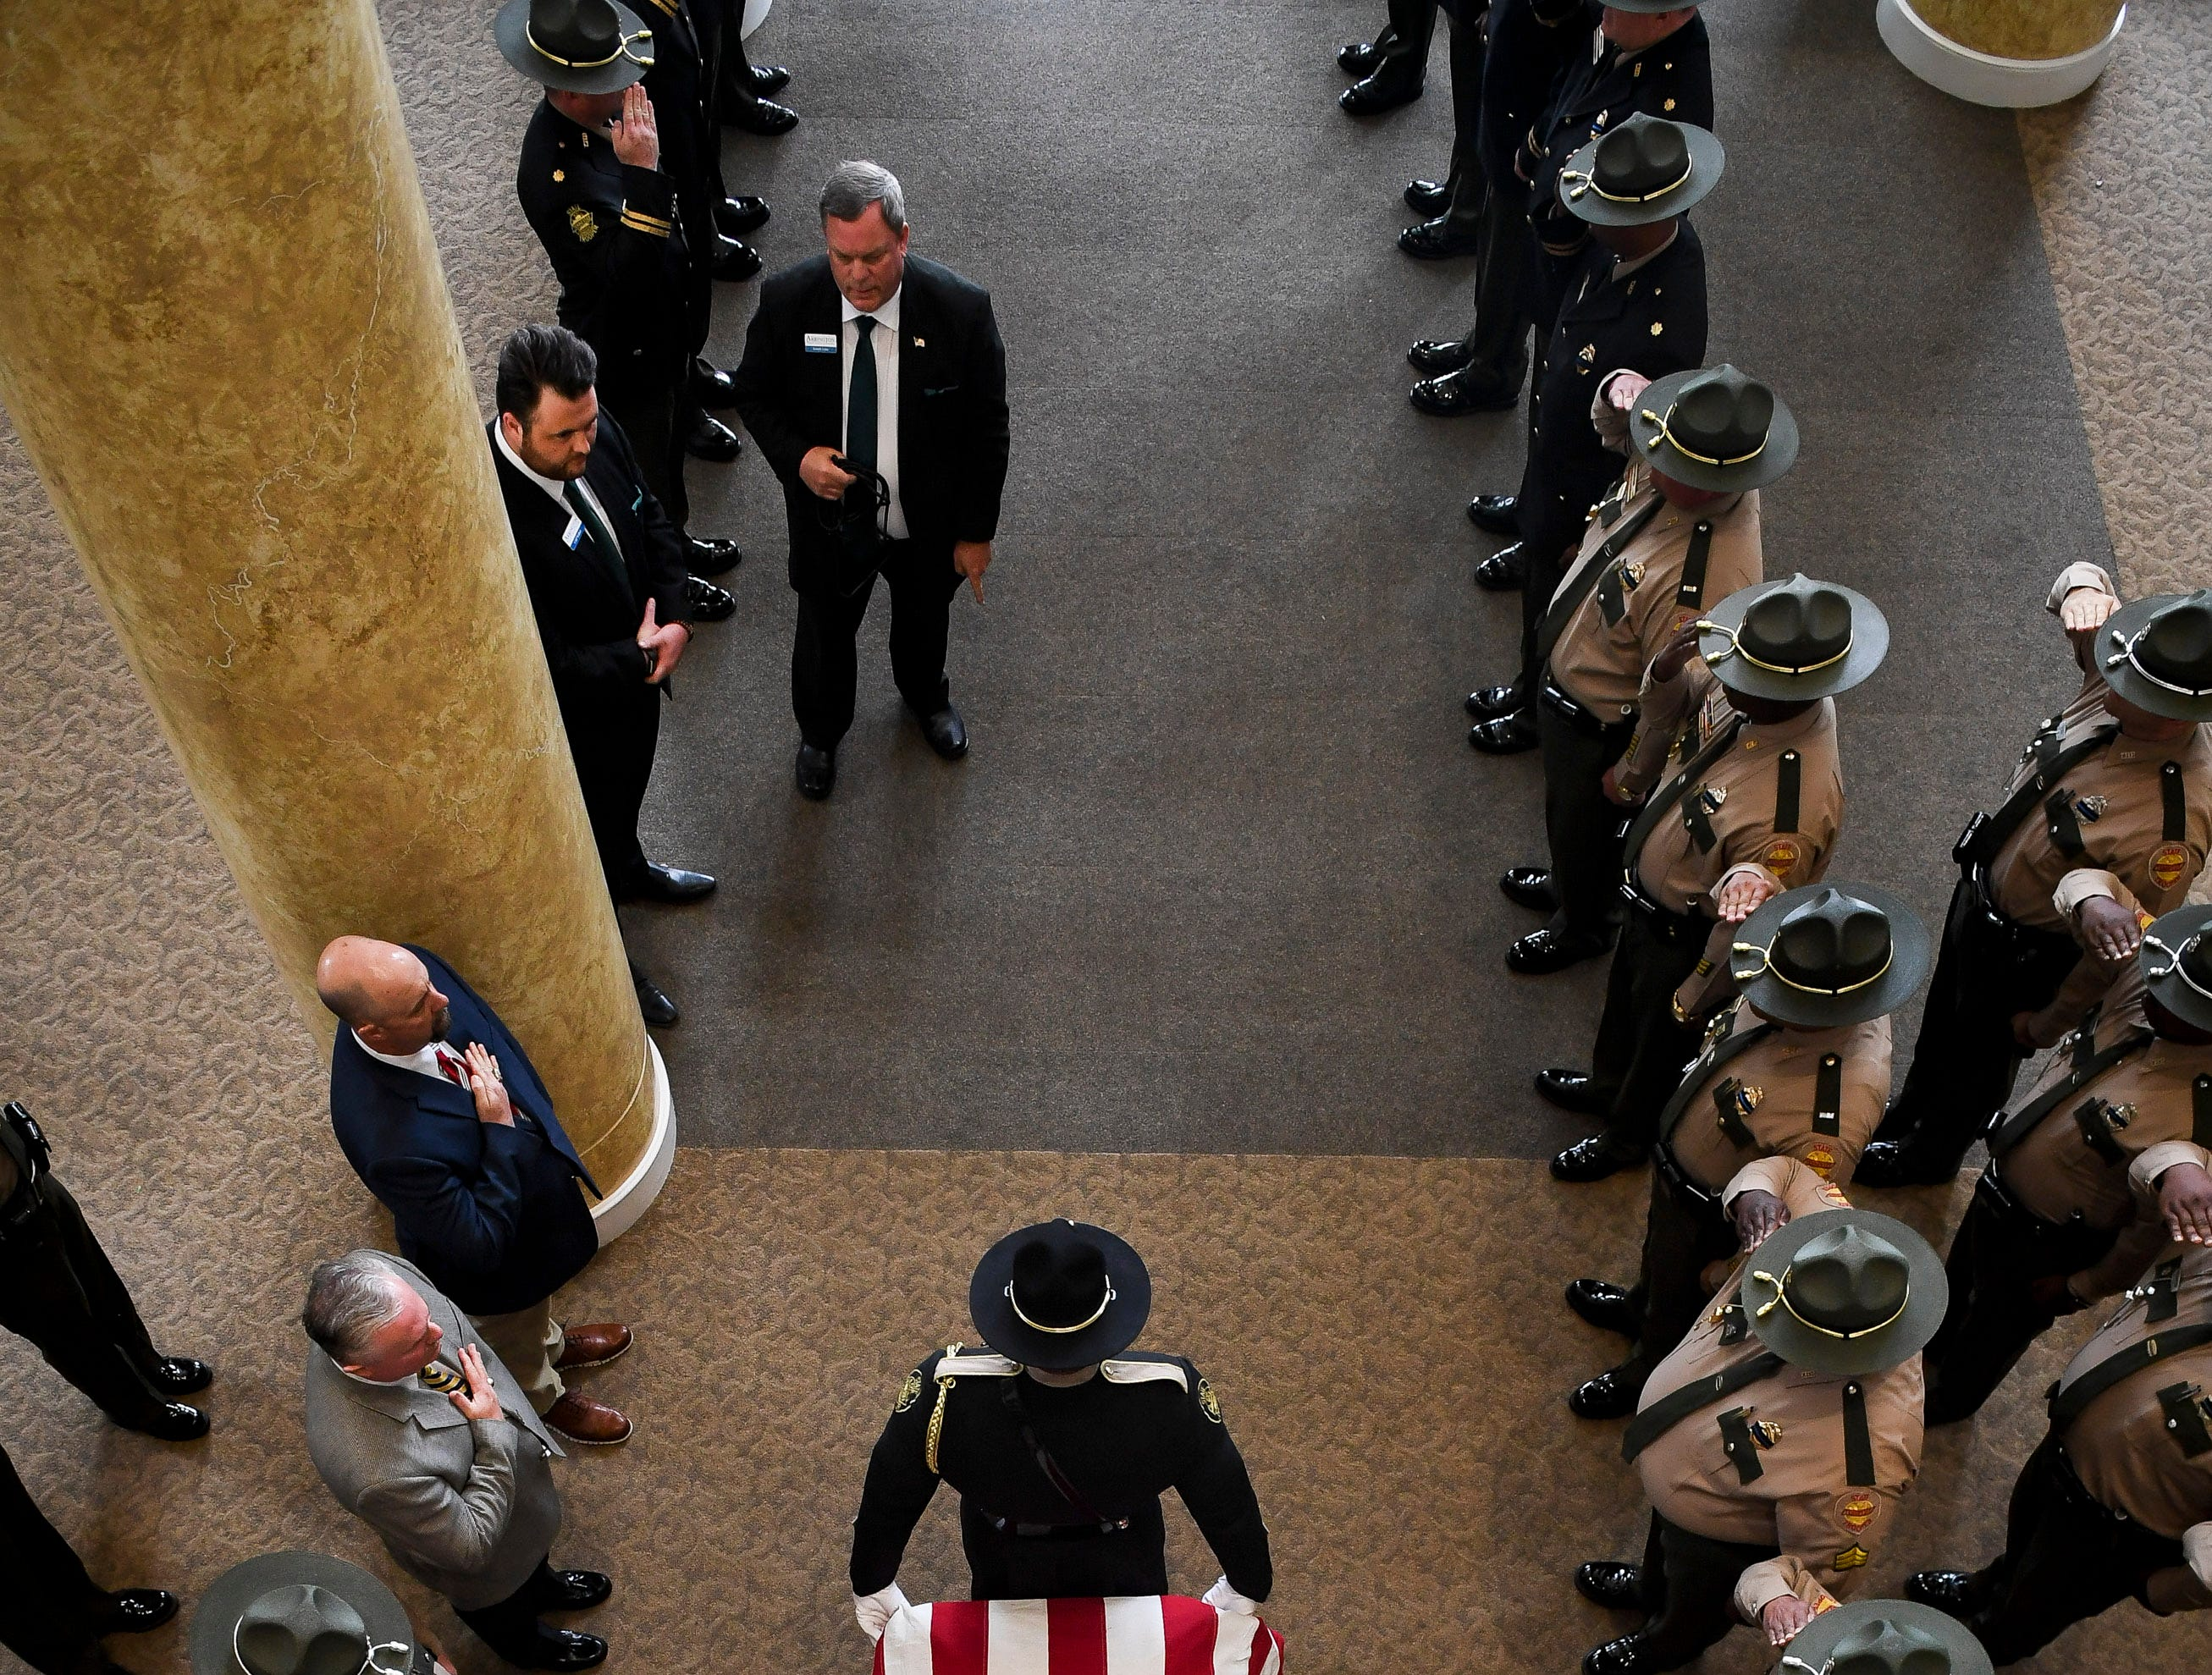 The casket is carried out after the funeral service for Tennessee State Trooper Matthew Gatti at West Jackson Baptist Church in Jackson, Tenn., Monday, May 13, 2019. Gatti died in the line of duty in an accident while responding to a car fire on I-40 in Madison County on May 6.